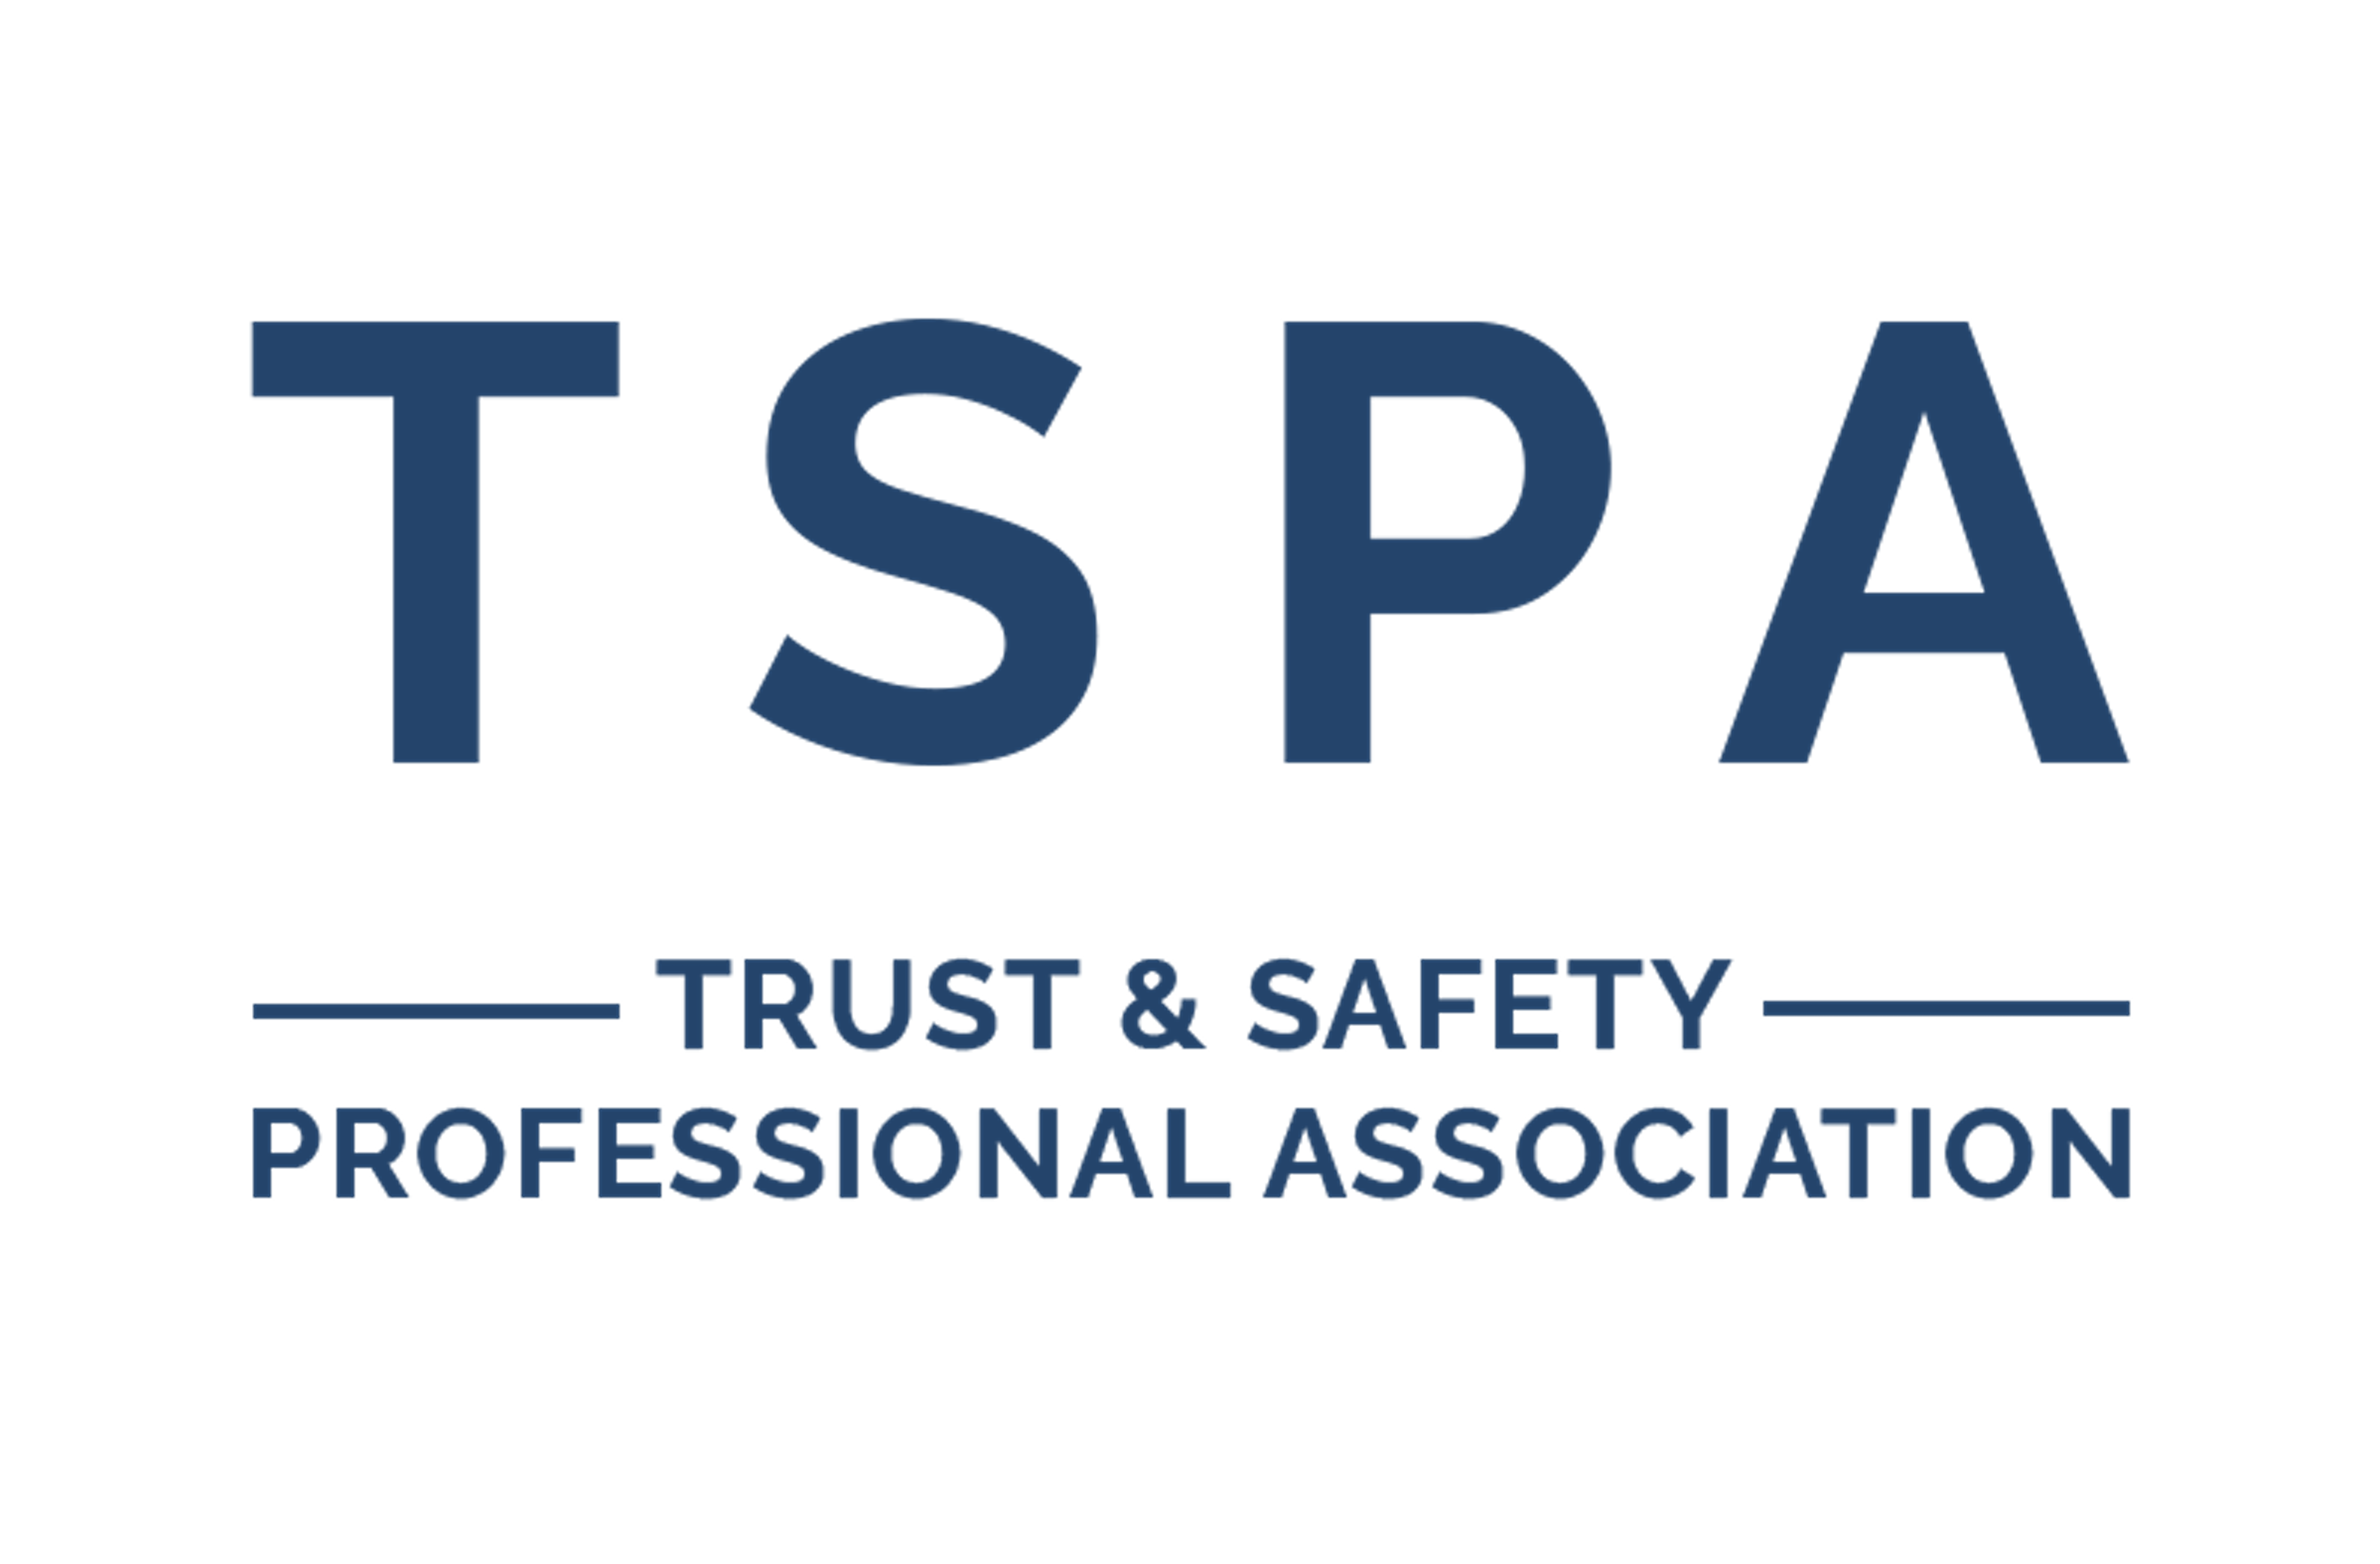 Fiveable Joins the Trust and Safety Professional Association